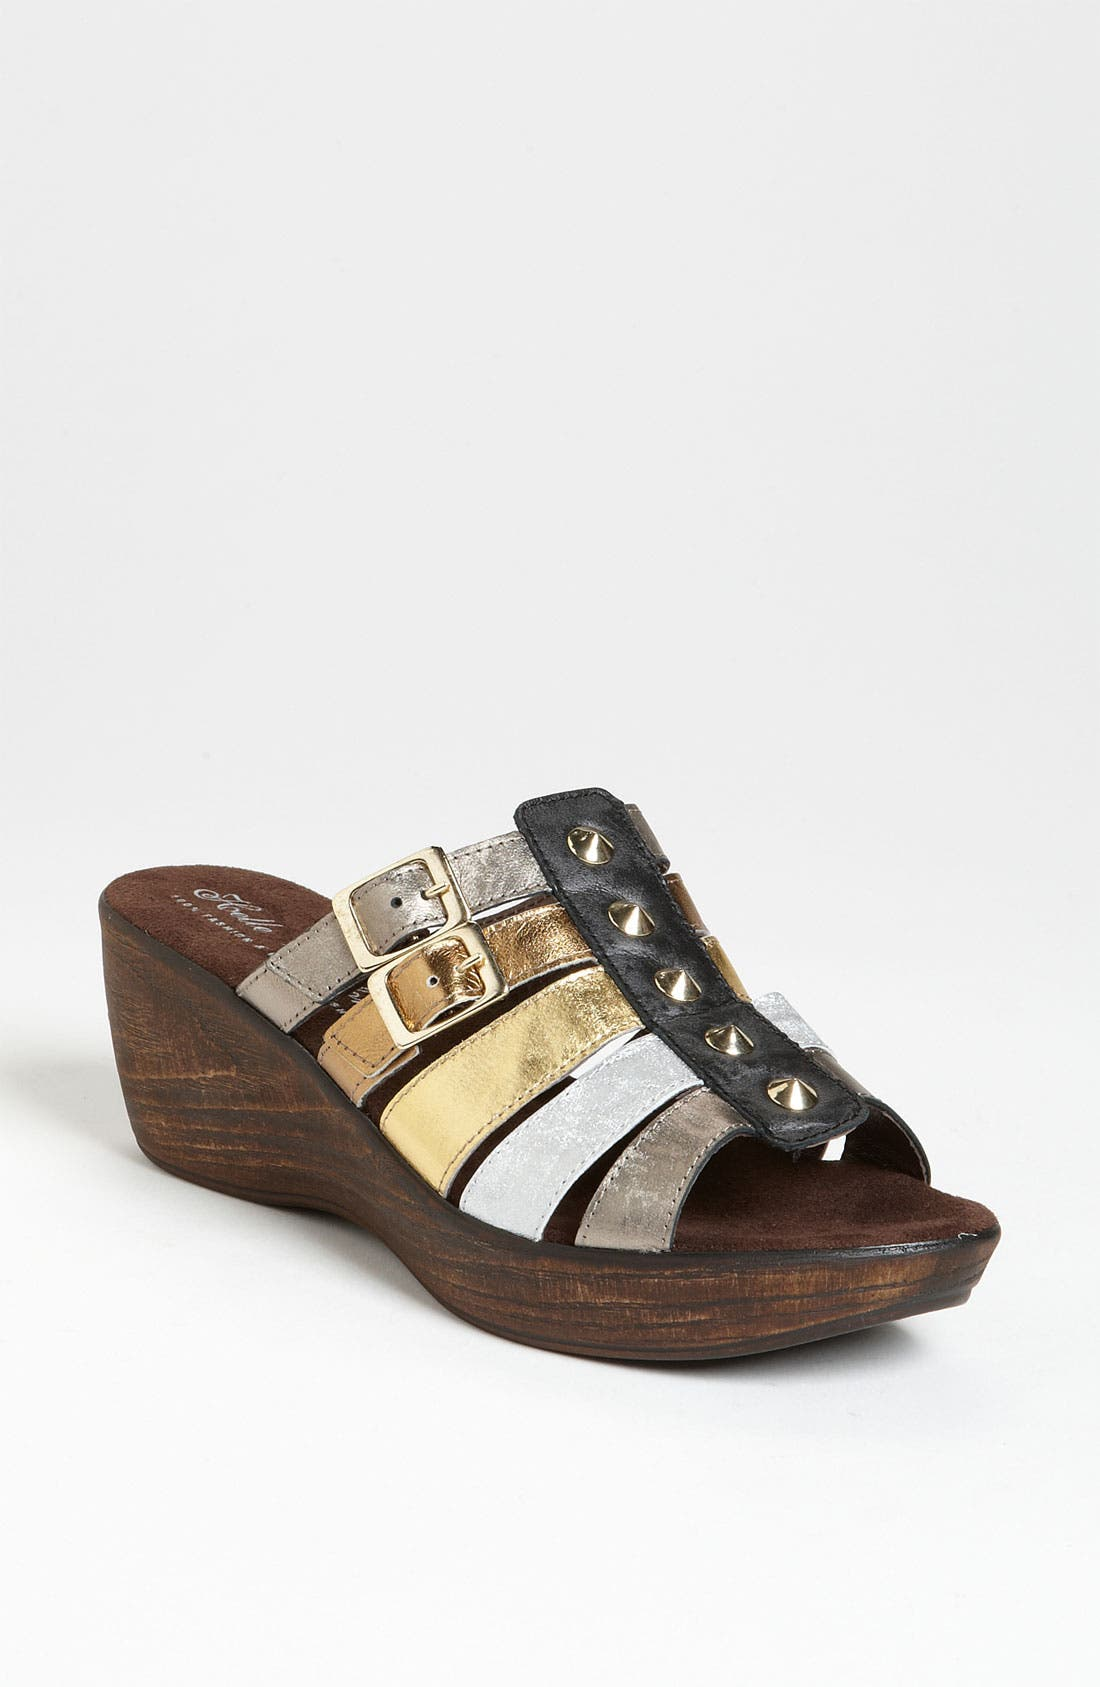 Alternate Image 1 Selected - Helle Comfort 'Georgia' Sandal